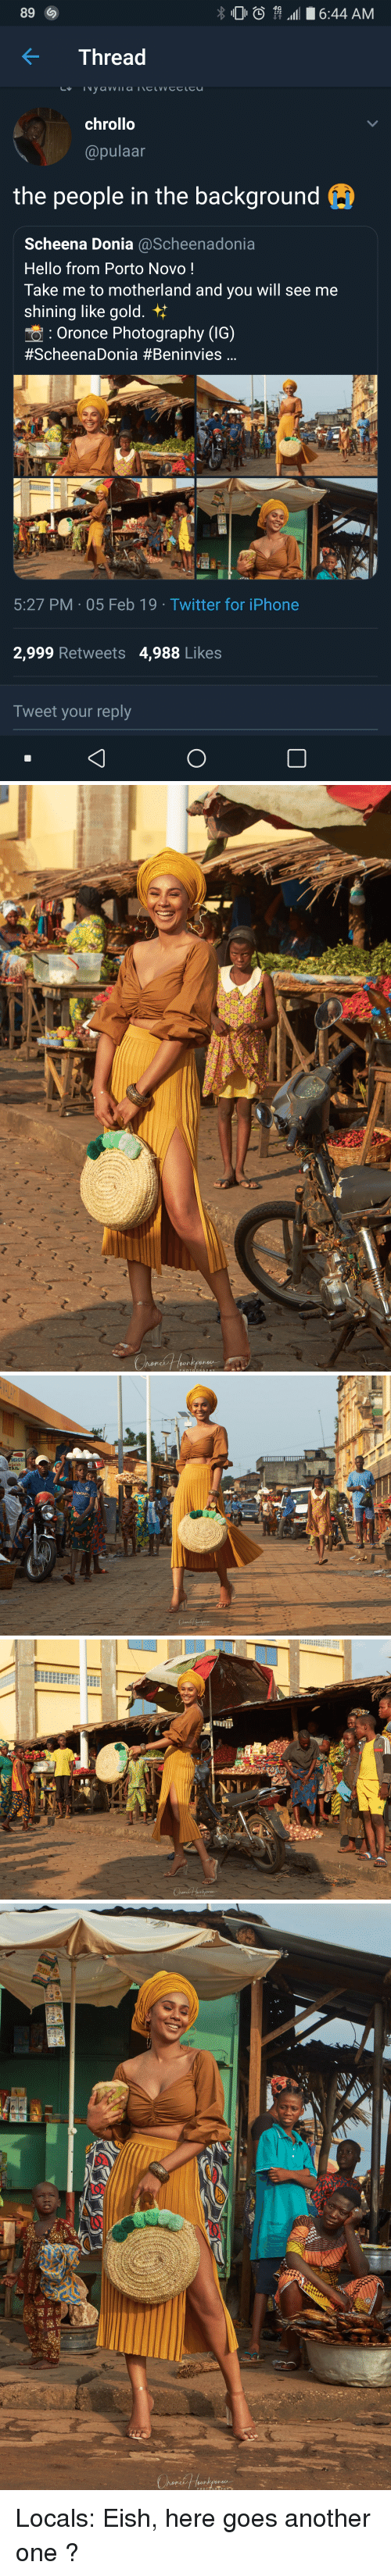 Another One, Blackpeopletwitter, and Funny: 89  O6:44 AM  Thread  chrollo  @pulaar  the people in the background e  Scheena Donia @Scheenadonia  Hello from Porto Novo!  Take me to motherland and you will see me  shining like gold.  Oronce Photography (IG)  #ScheenaDonia #Beninvies  5:27 PM 05 Feb 19 Twitter for iPhone  2,999 Retweets 4,988 Likes  Tweet your reply  0   gRCER  ales  TAIL  YOKOHAV   0u  PHOTOGRAPHY Locals: Eish, here goes another one ?